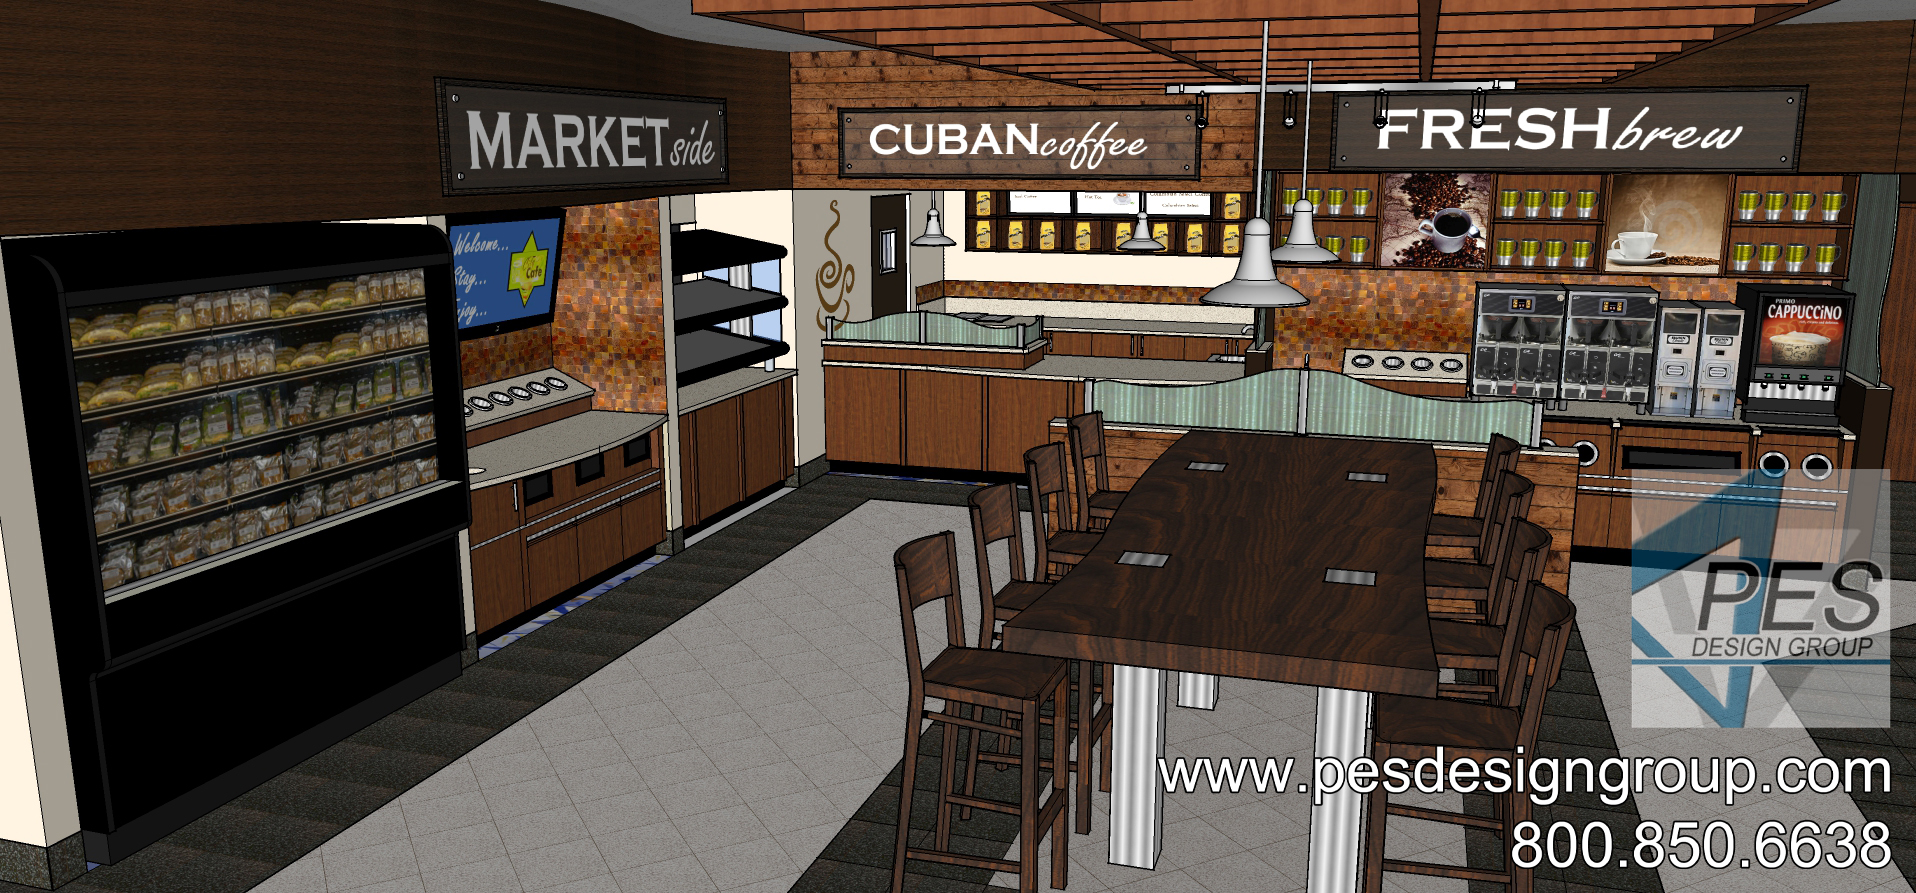 Coconut Creek Shell C Store Design Concept